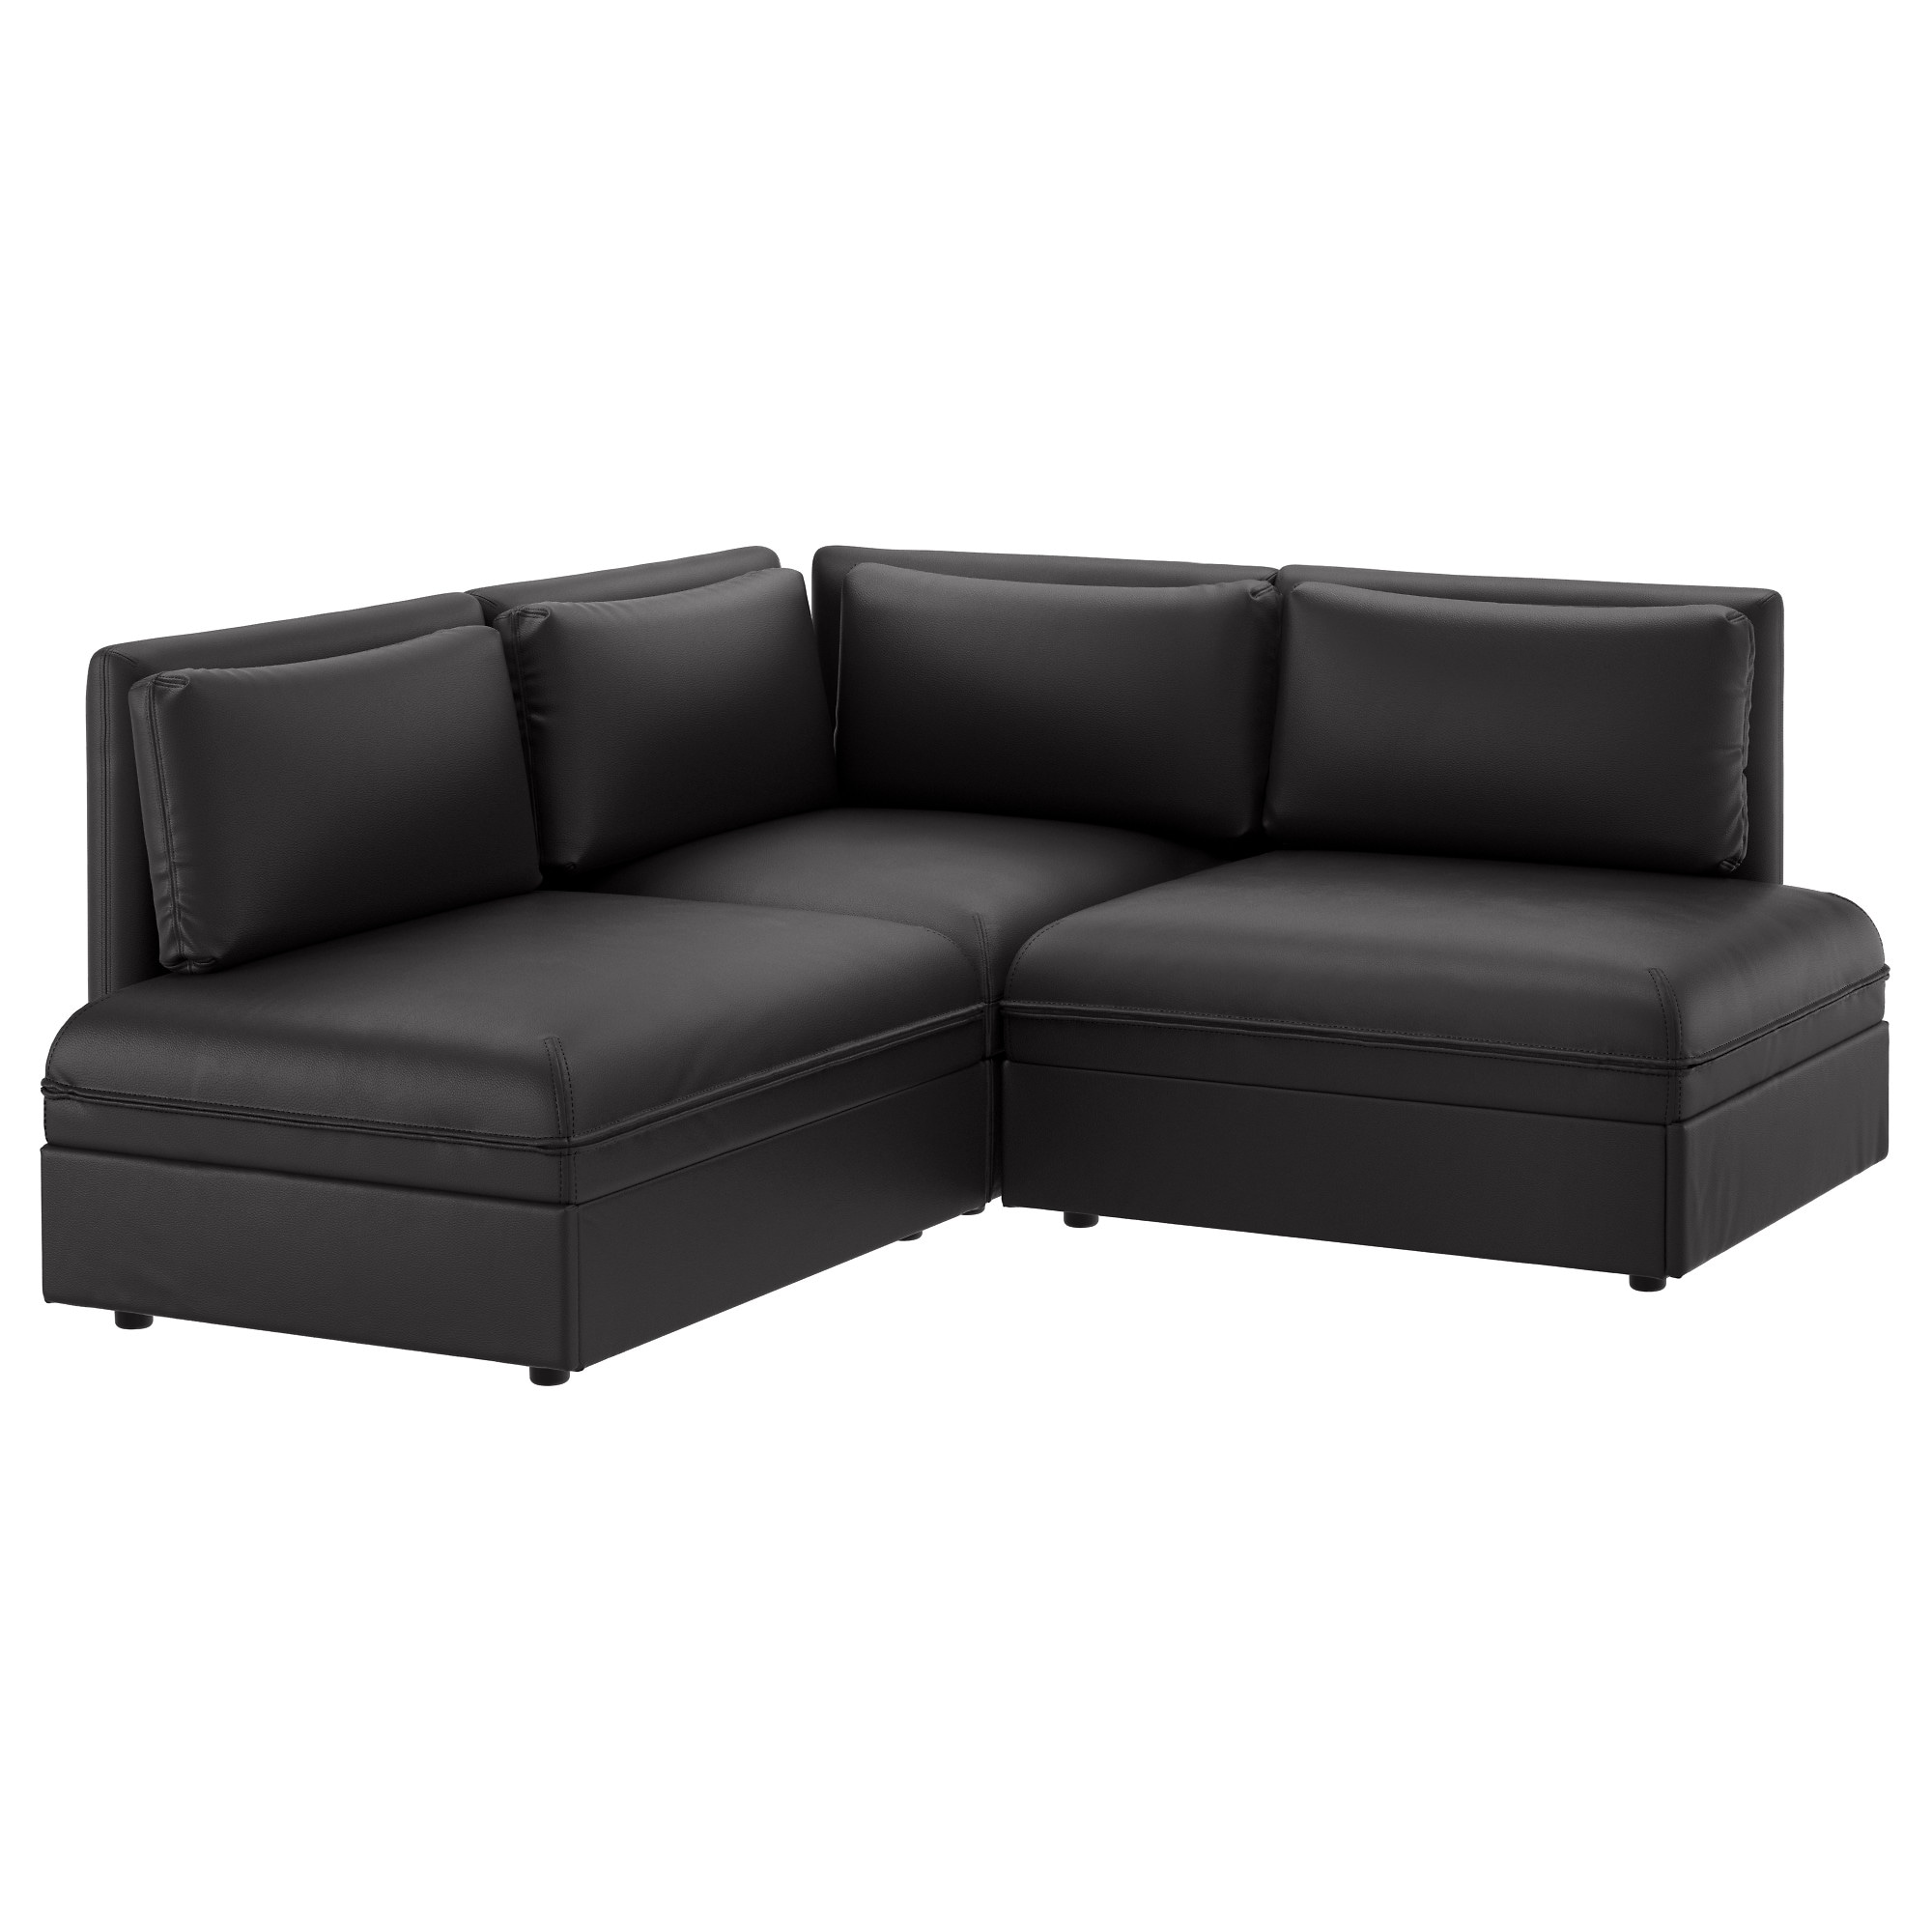 Black leather chair texture - Vallentuna Sectional 2 Seat Murum Black Width 76 Depth 76